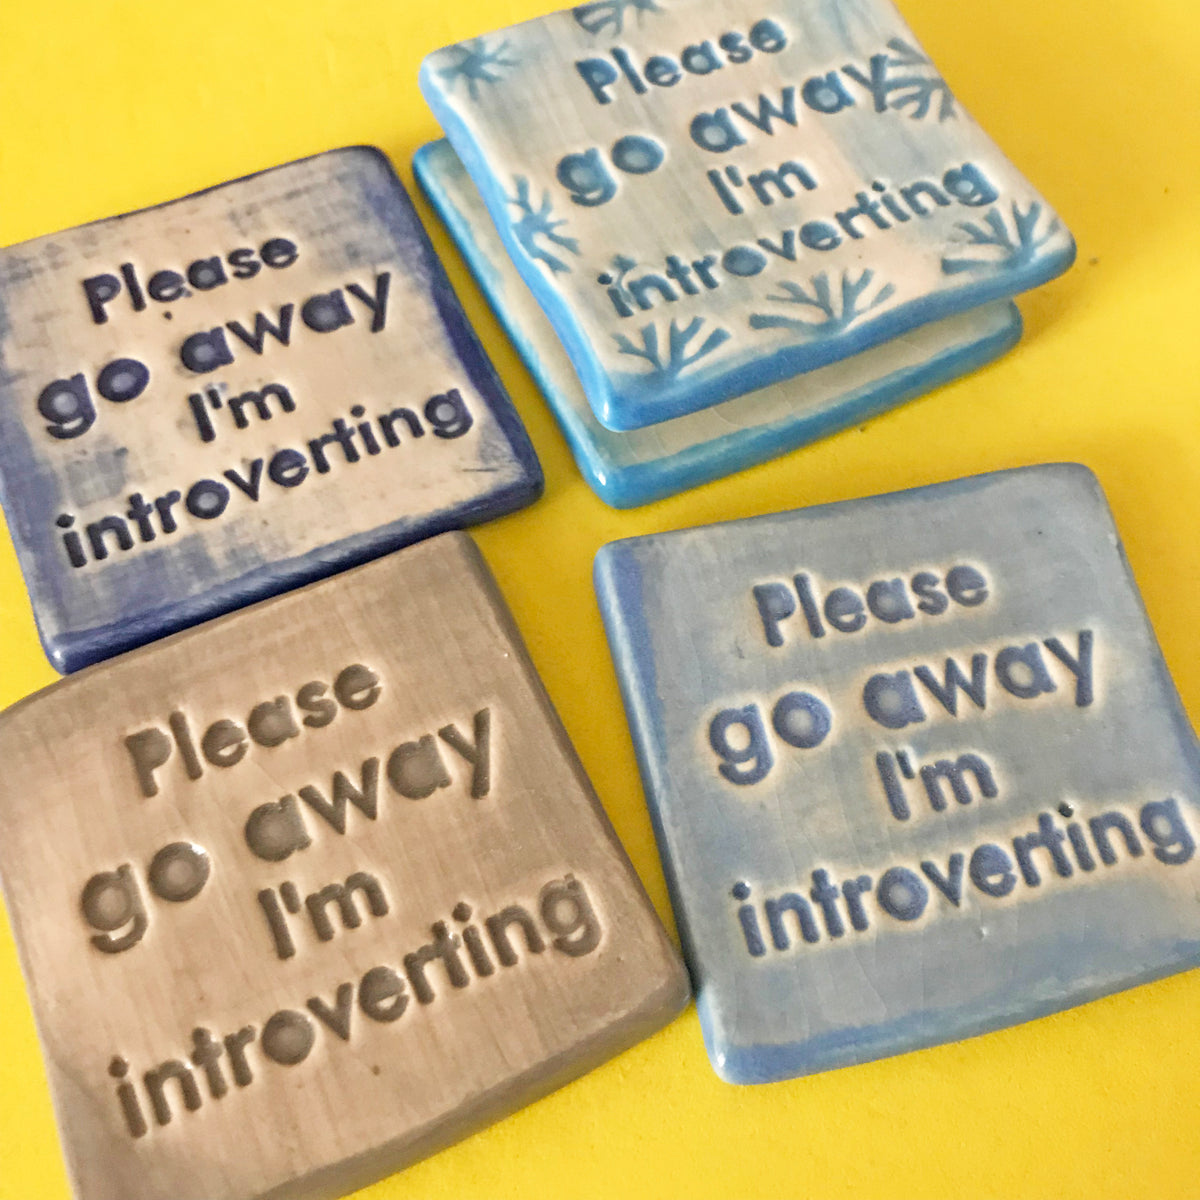 "Attention introverts, this magnet is for you.  It says, ""Please go away I'm introverting""."